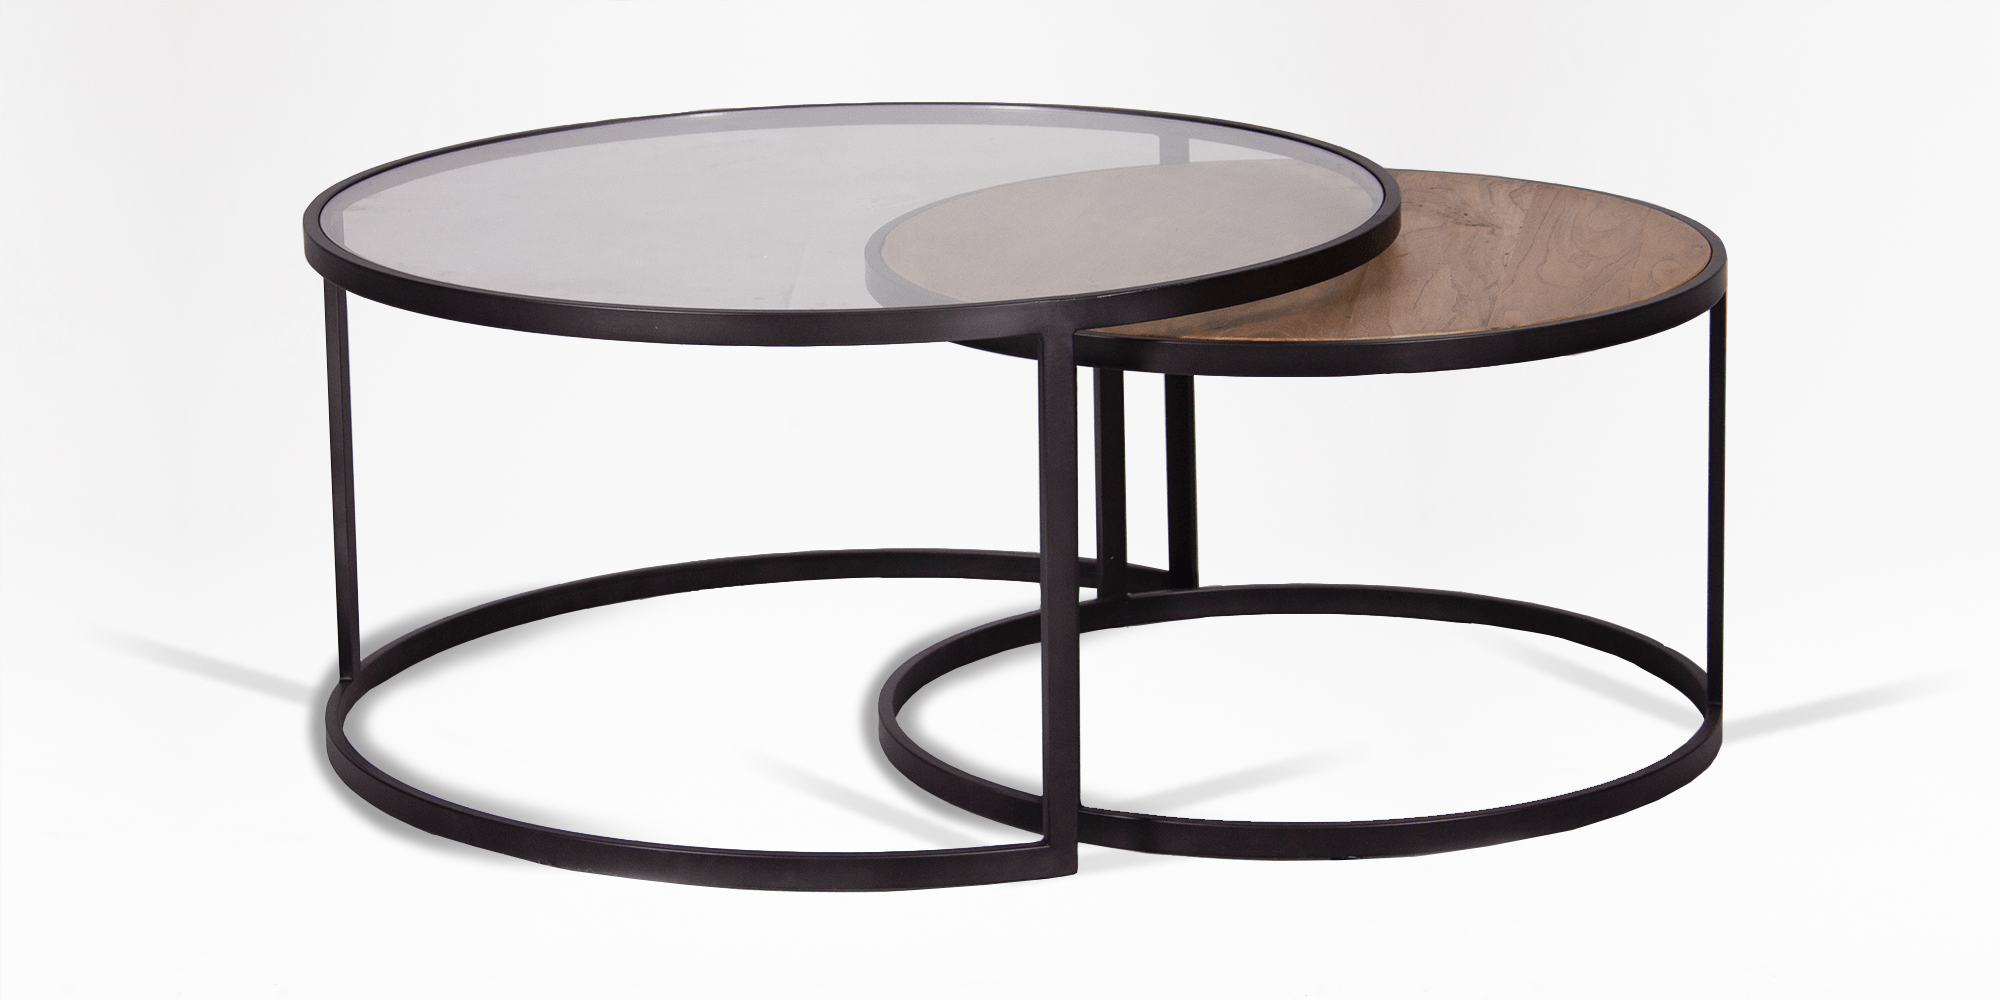 Heron Round Nest Of Tables Coffee Tables Living Room Living Room Coricraft Modern Glass Coffee Table Coffee Table Square Nesting Coffee Tables [ 1000 x 2000 Pixel ]